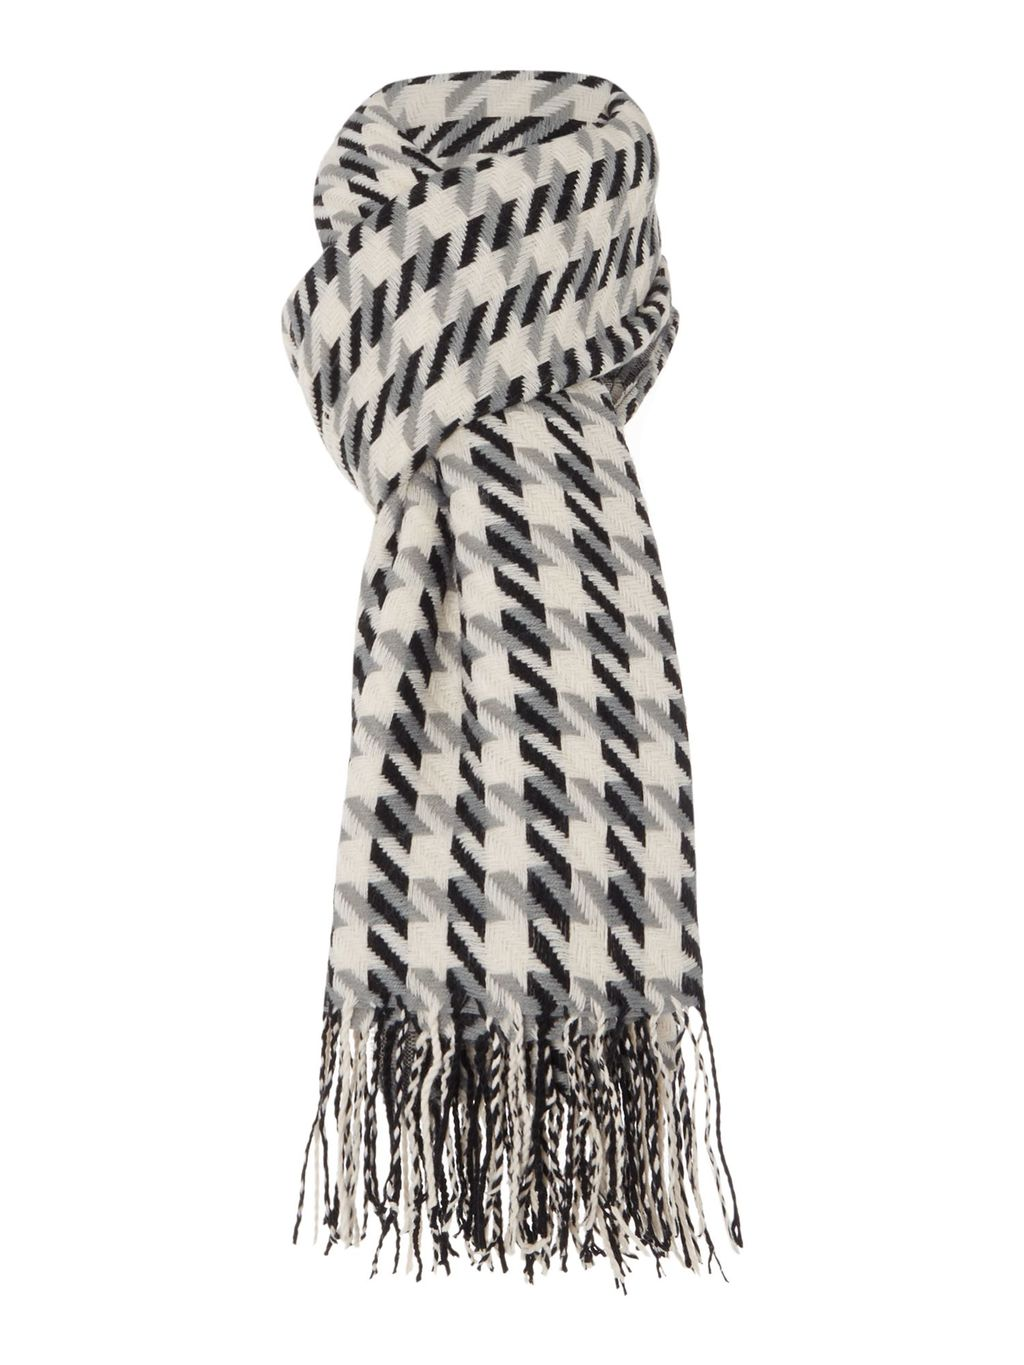 Dogtooth Zoom Mw Scarf, Monochrome - secondary colour: ivory/cream; predominant colour: black; occasions: casual, creative work; type of pattern: standard; style: regular; size: standard; material: knits; embellishment: fringing; pattern: checked/gingham; season: a/w 2015; wardrobe: highlight